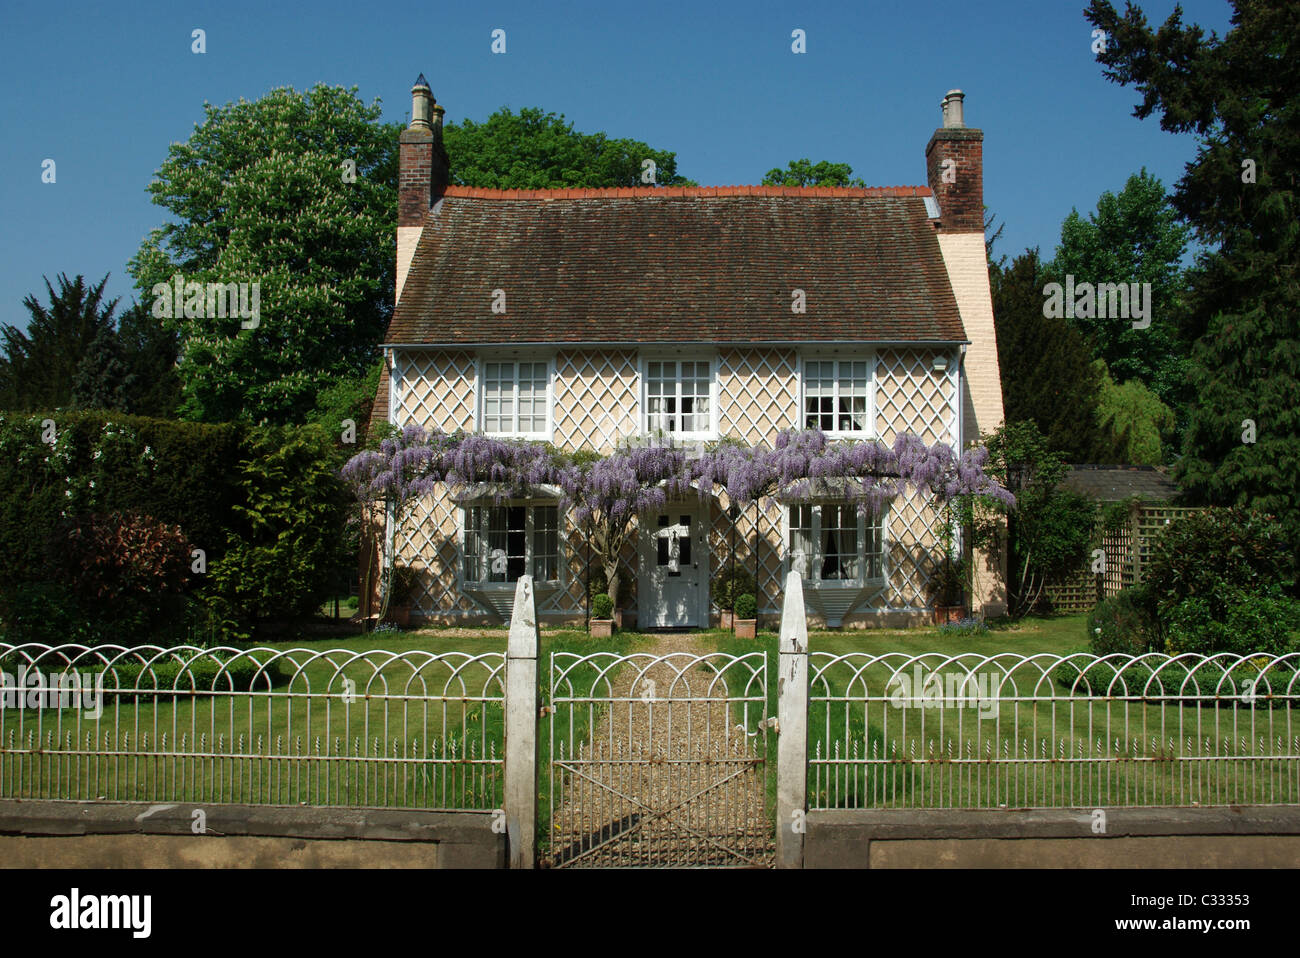 A picturesque house in the village of Old Warden, Bedfordshire, UK Stock Photo